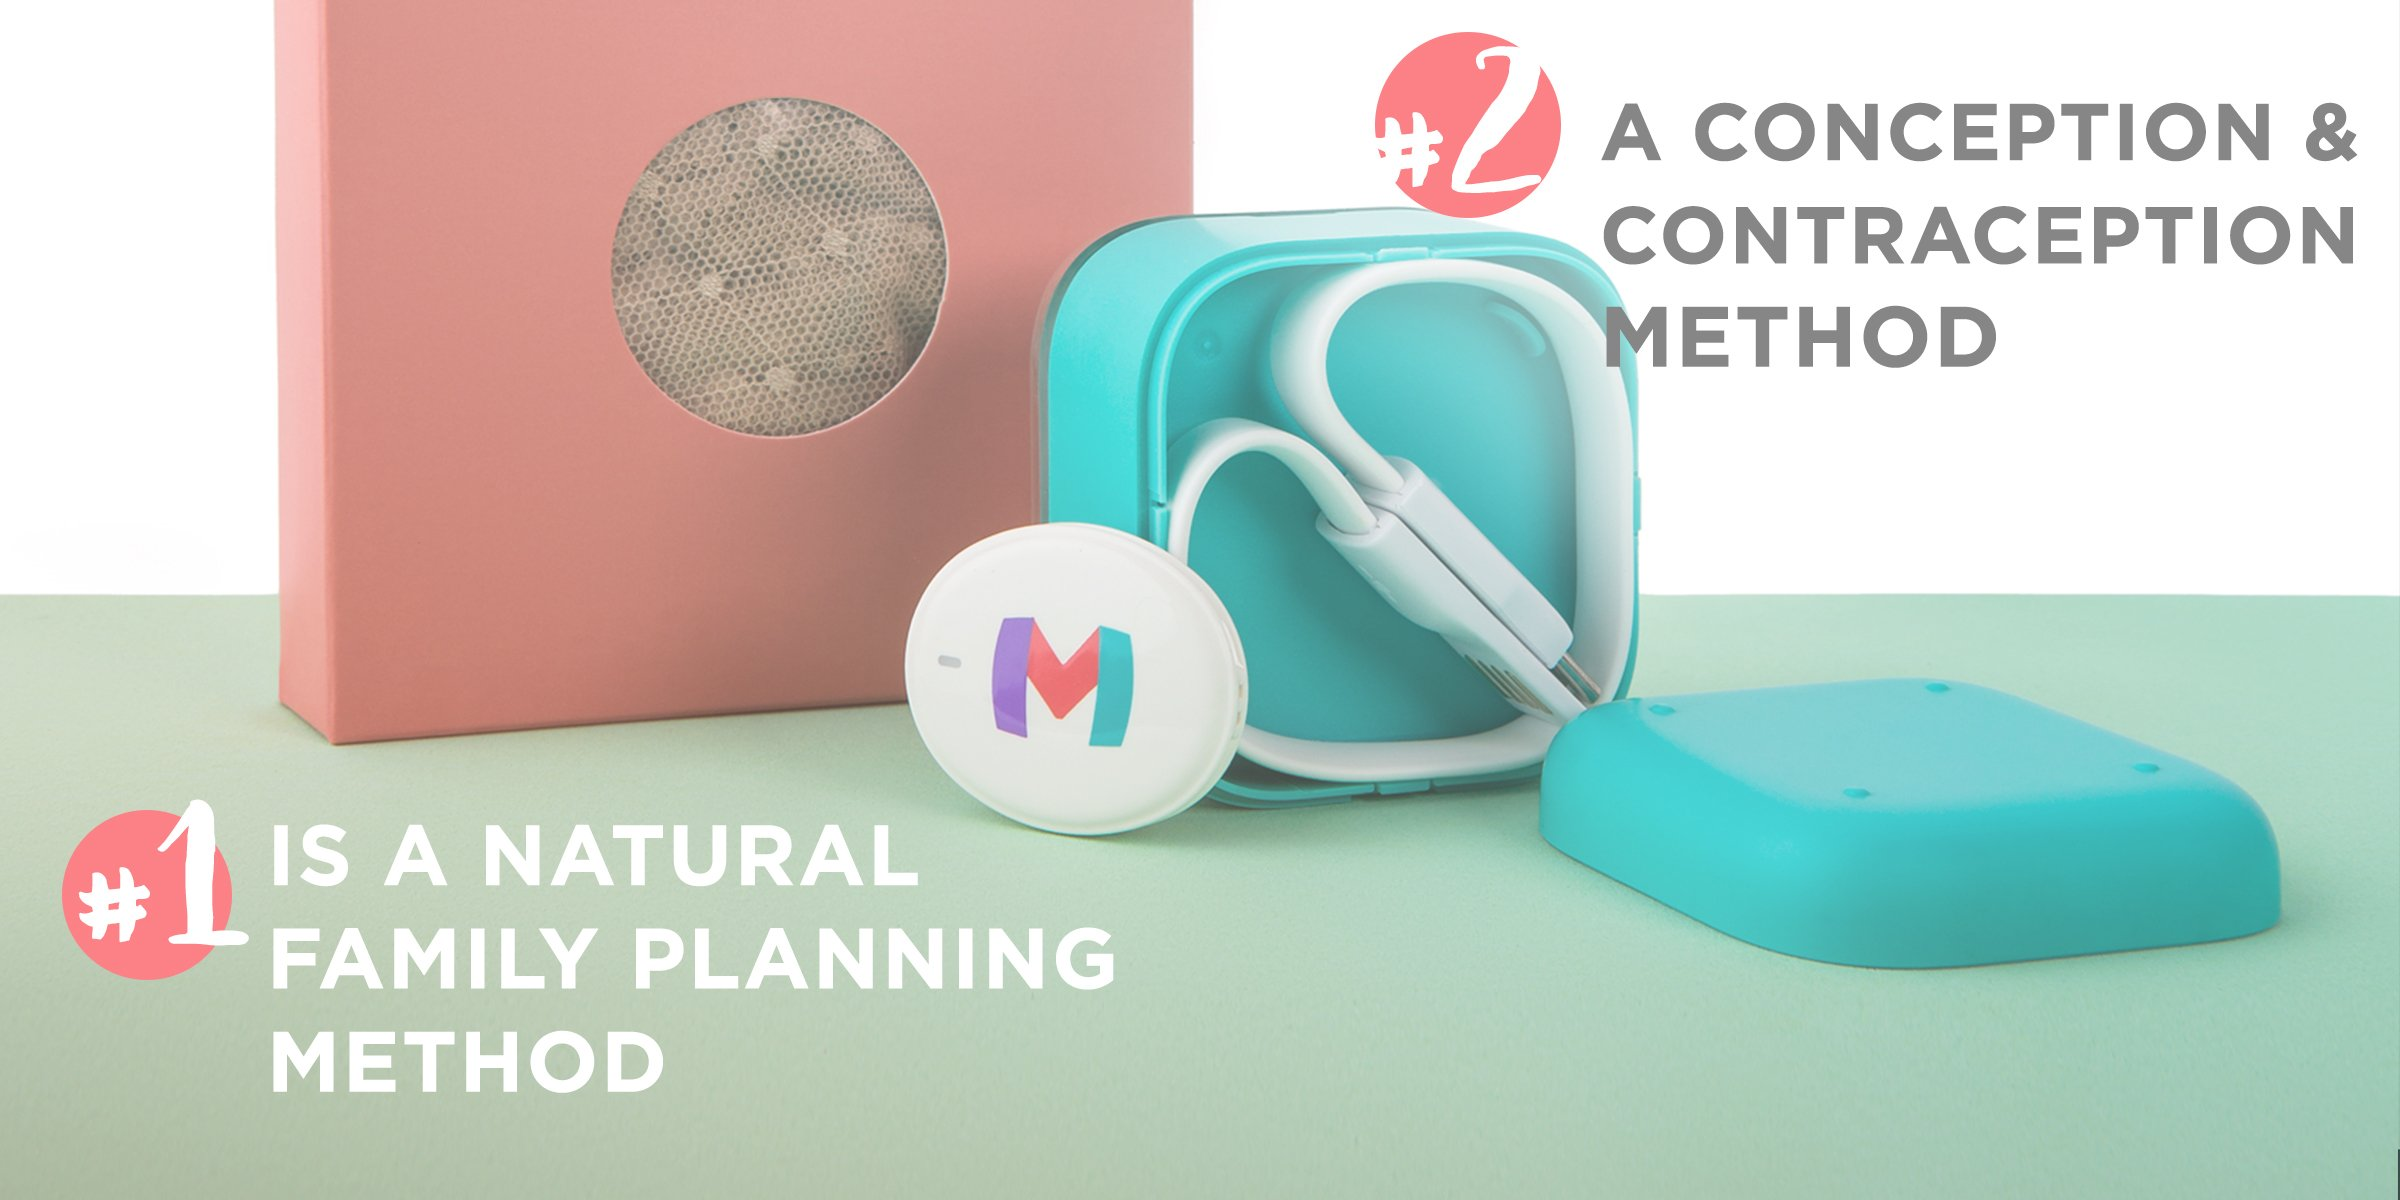 Ovulation Fertility Monitor Kit by HIMAMA - Great Predictor for Natural Family Planning - Period Tracker Sticks on Body - Connect to App (Medium) by HIMAMA (Image #3)